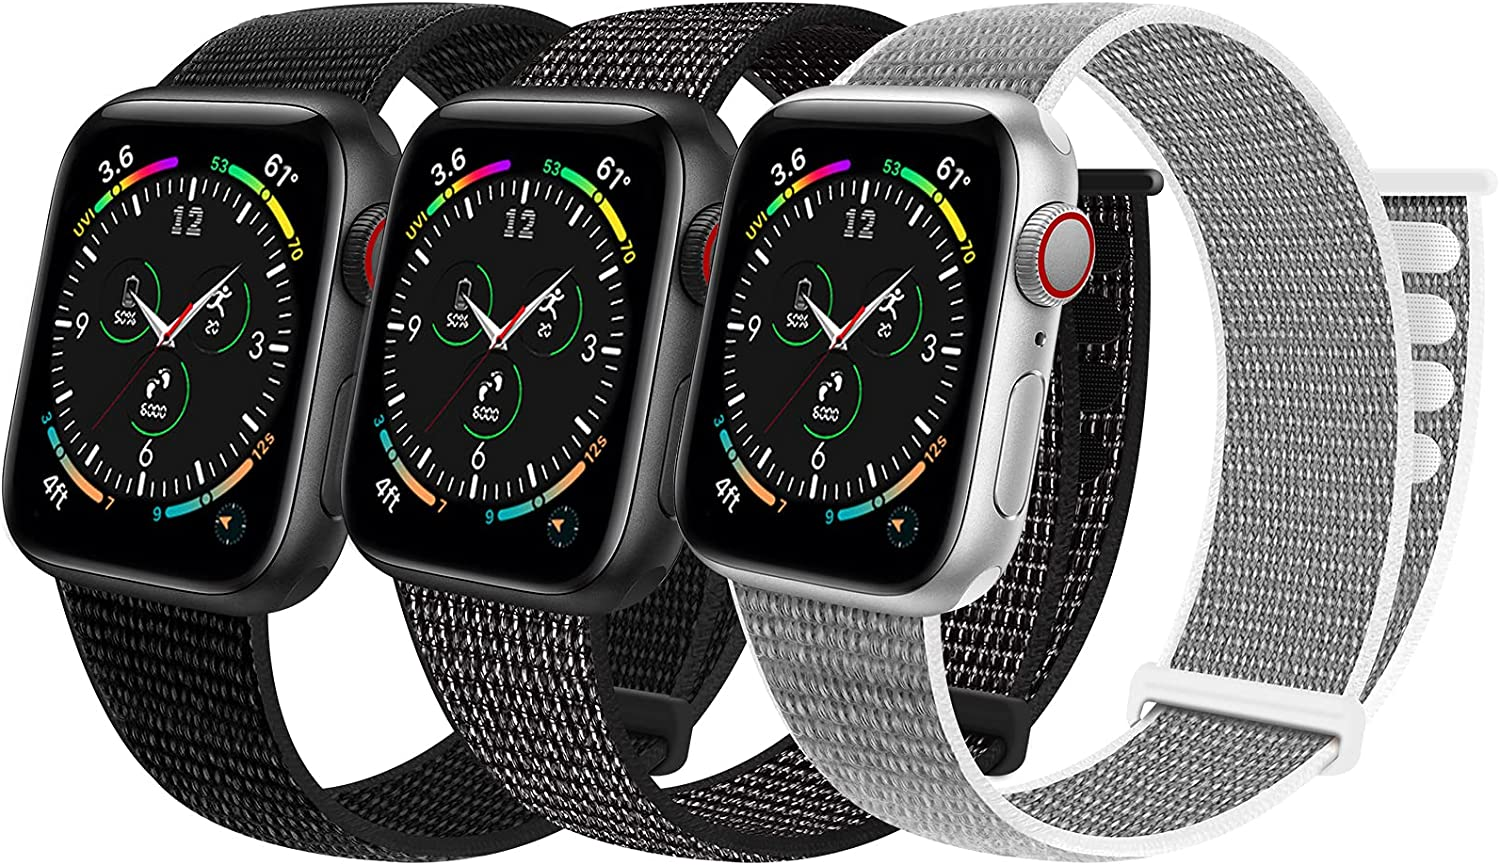 Geoumy 3 Pack Sport Velcro Nylon Bands Compatible with Apple Watch 44mm 40mm 41mm 42mm 38mm 45mm, Stretchy Loop Woven Braided Soft Women Men Strap Compatible for iWatch Series 7 6 5 4 3 2 1 SE